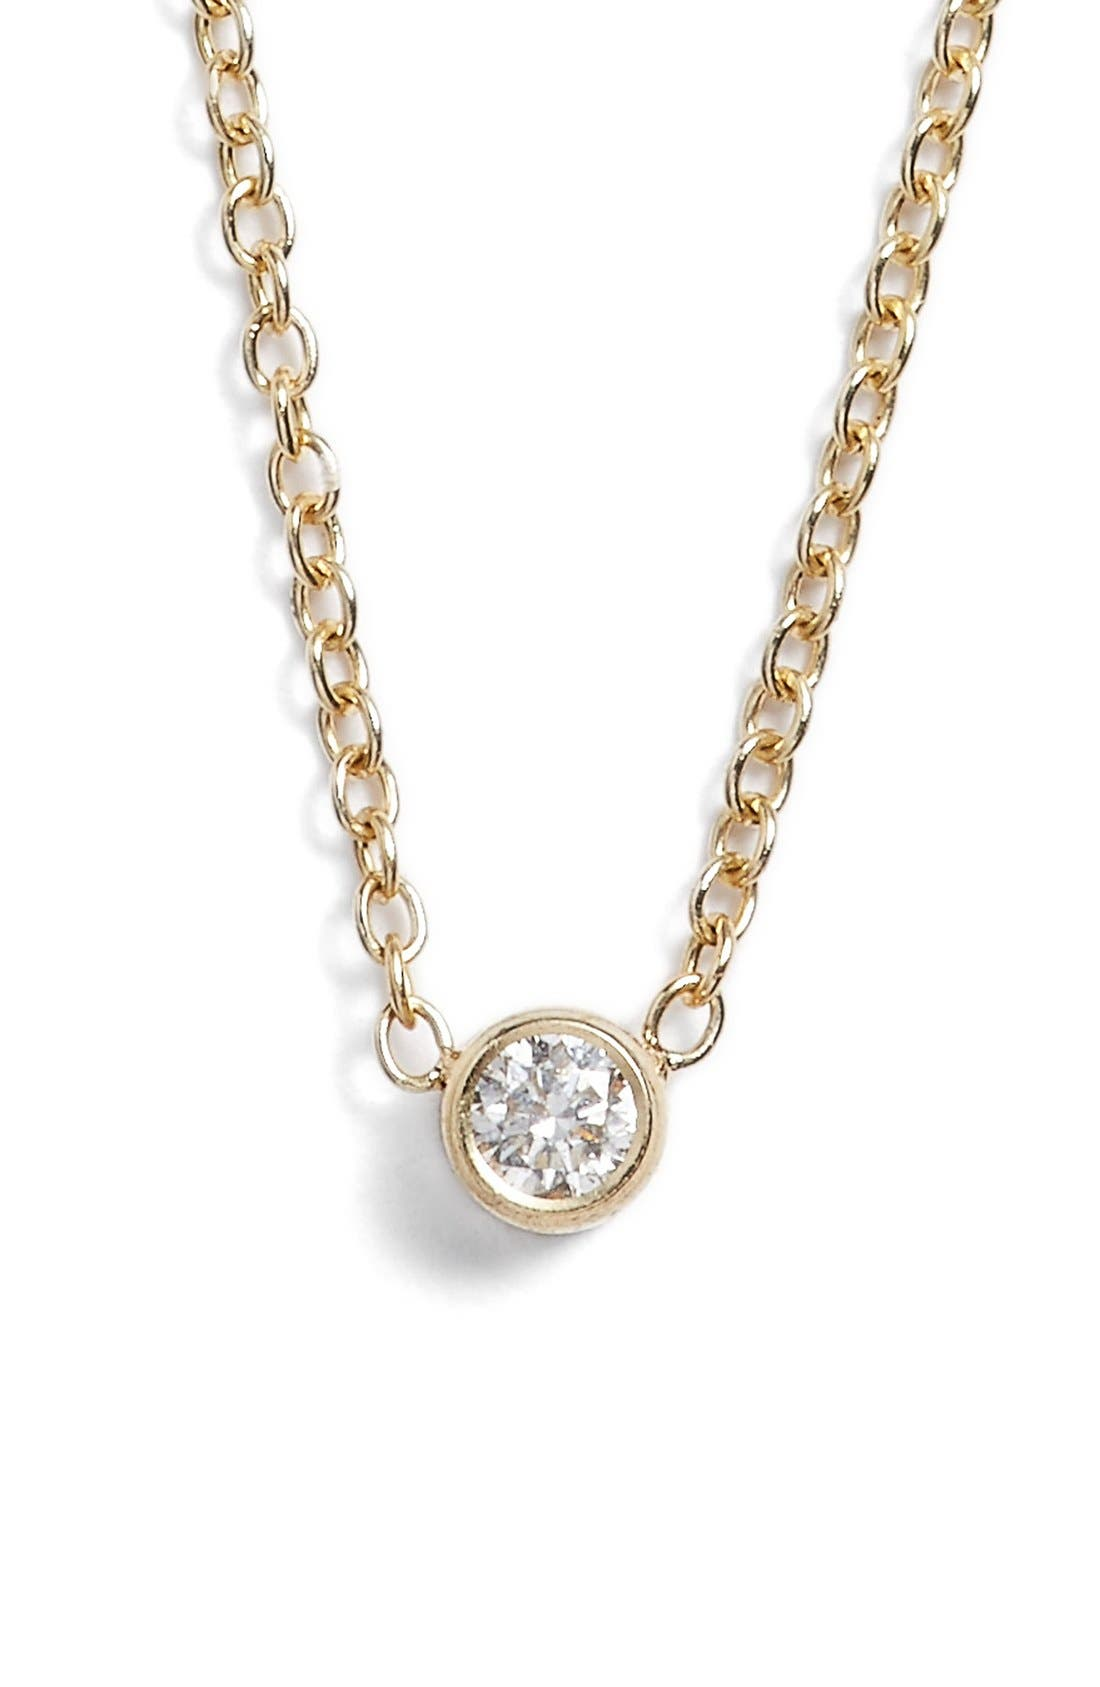 Zoë Chicco Diamond Bezel Pendant Necklace